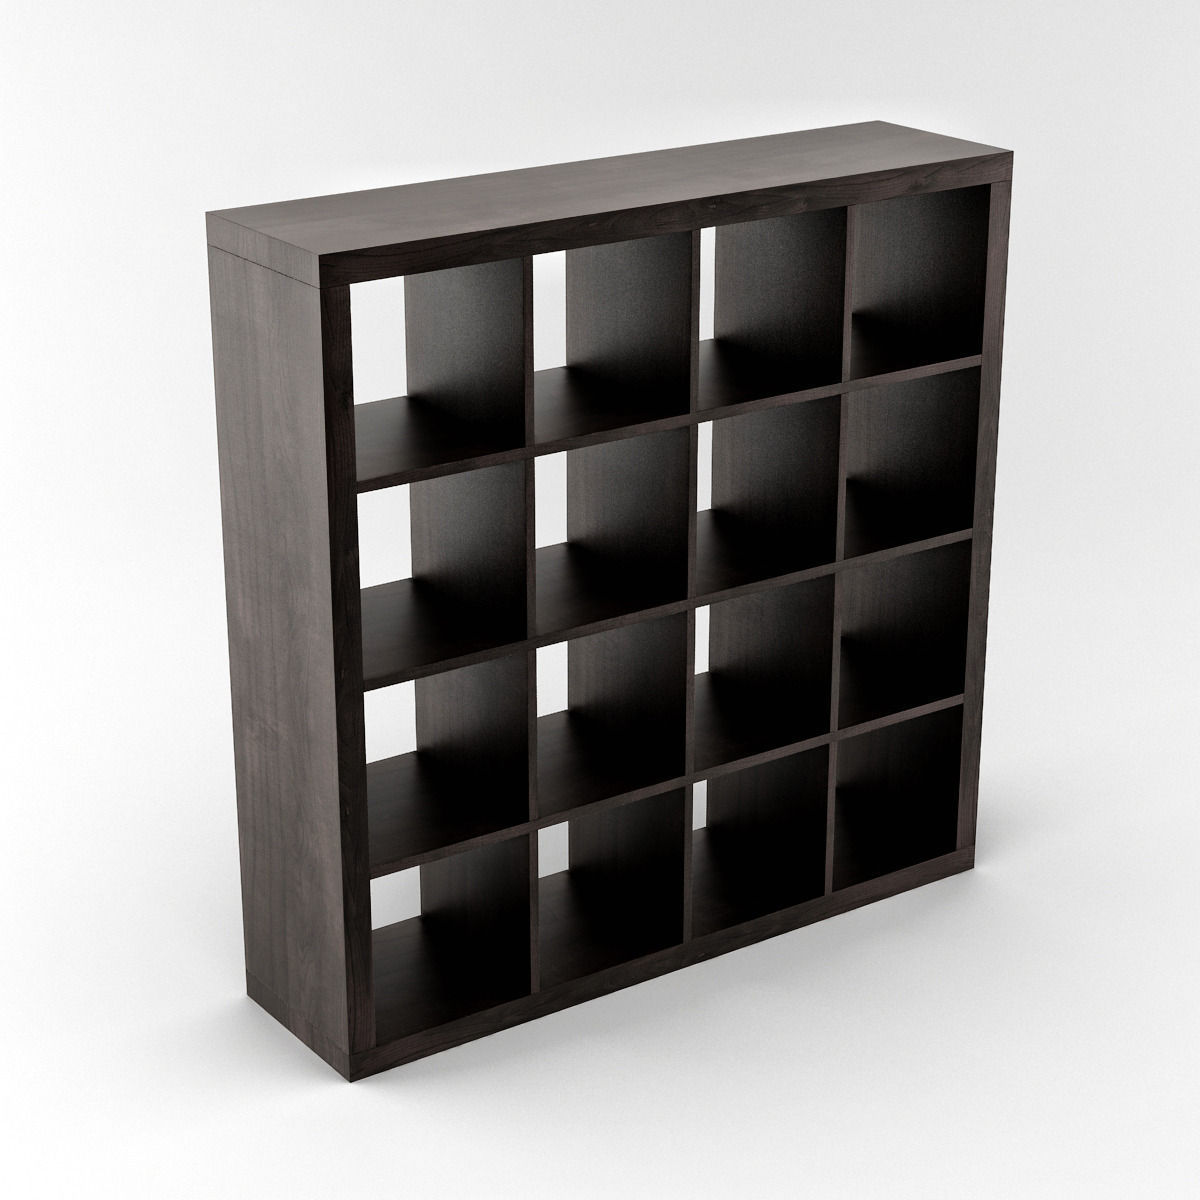 ikea expedit shelving unit 04 3d model max. Black Bedroom Furniture Sets. Home Design Ideas